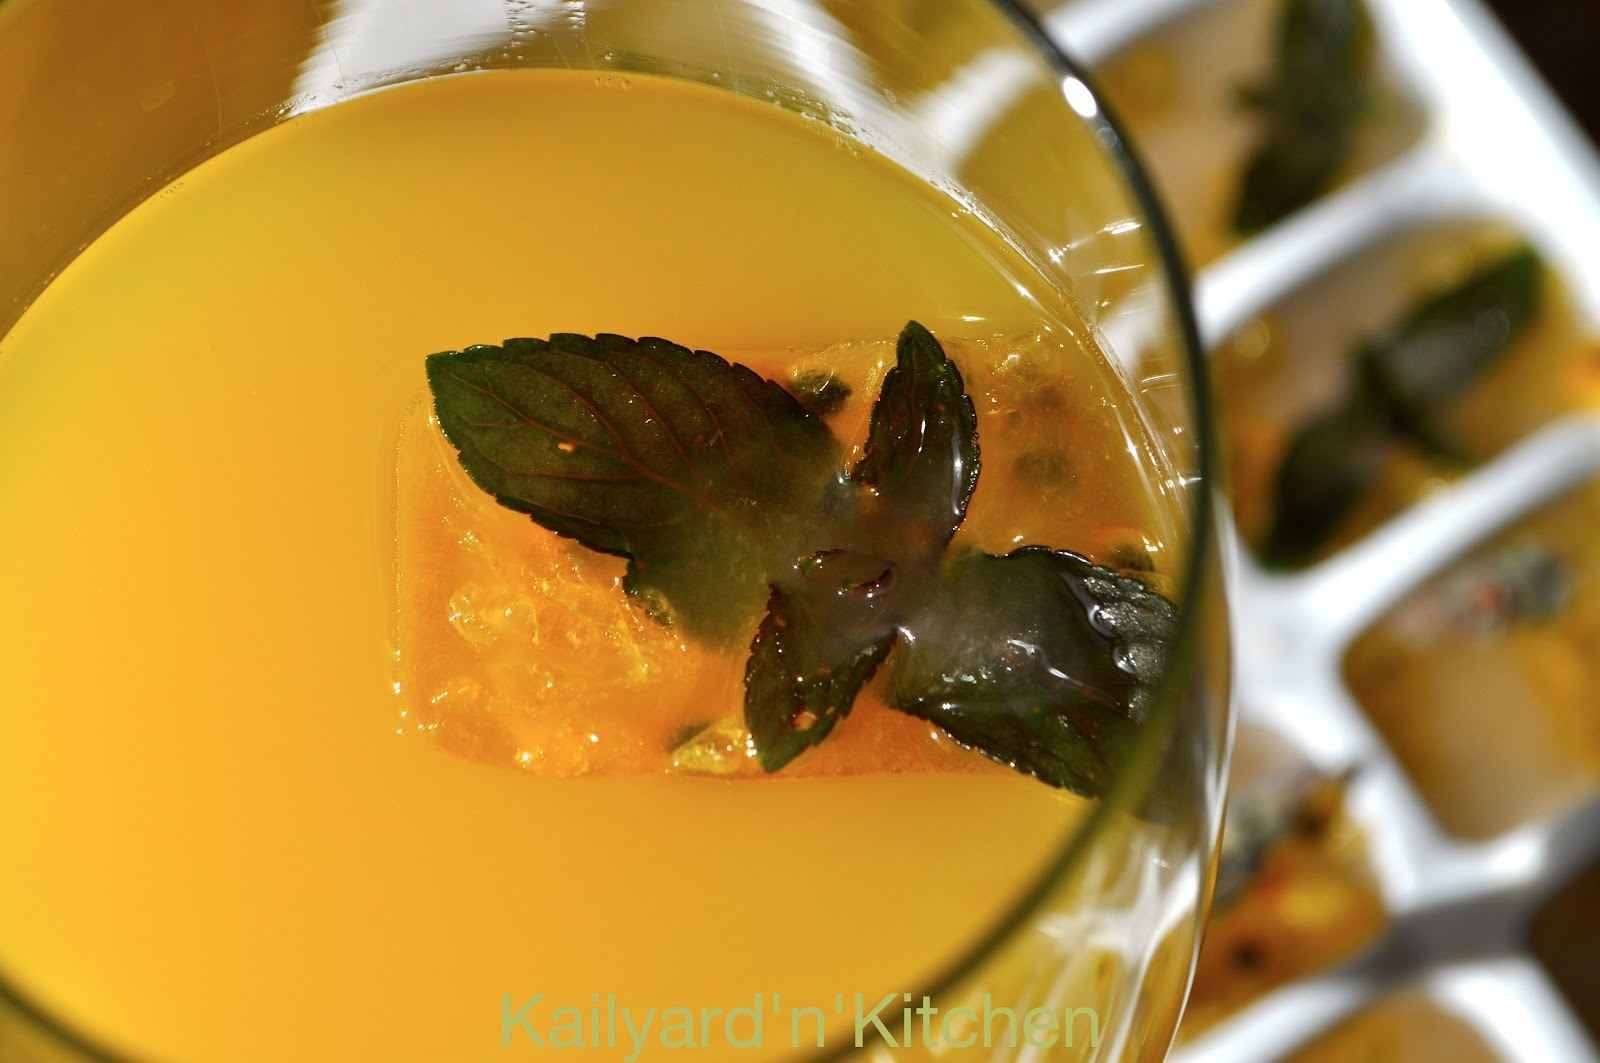 PASSION FRUIT LAVENDER MINT ICE CUBES | Kailyard'n'Kitchen